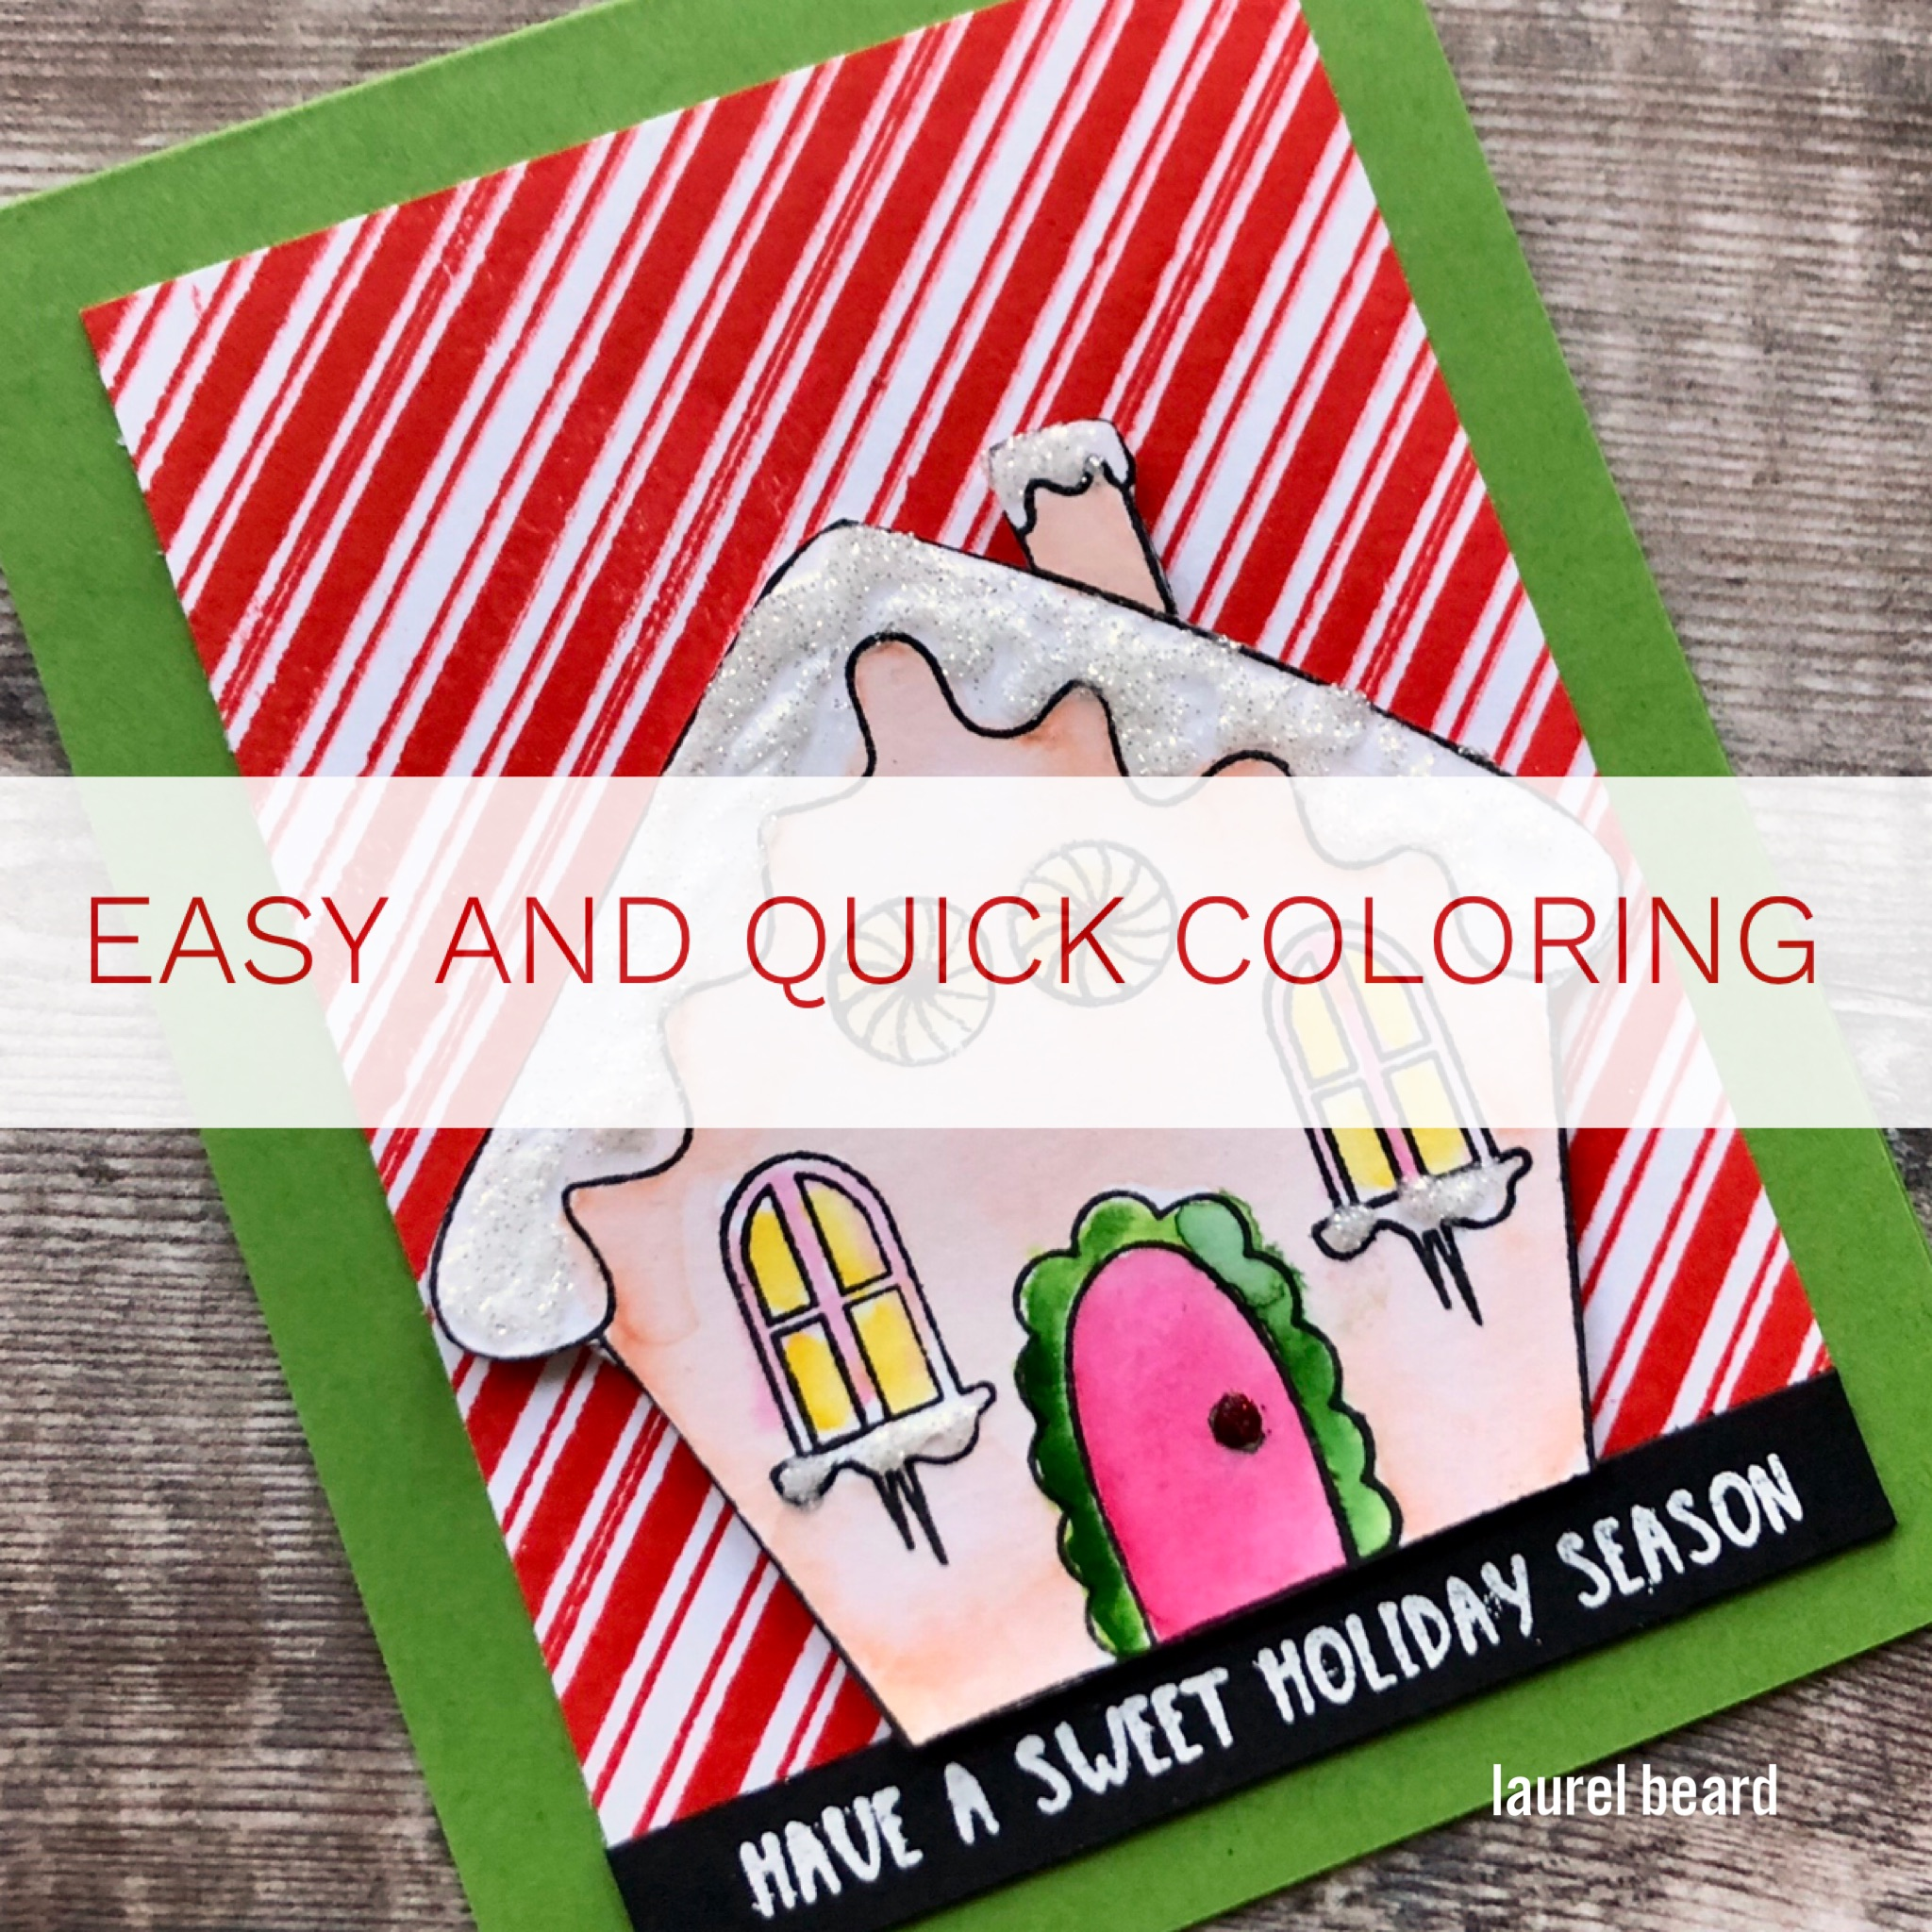 Easy and Quick Coloring video with Laurel Beard